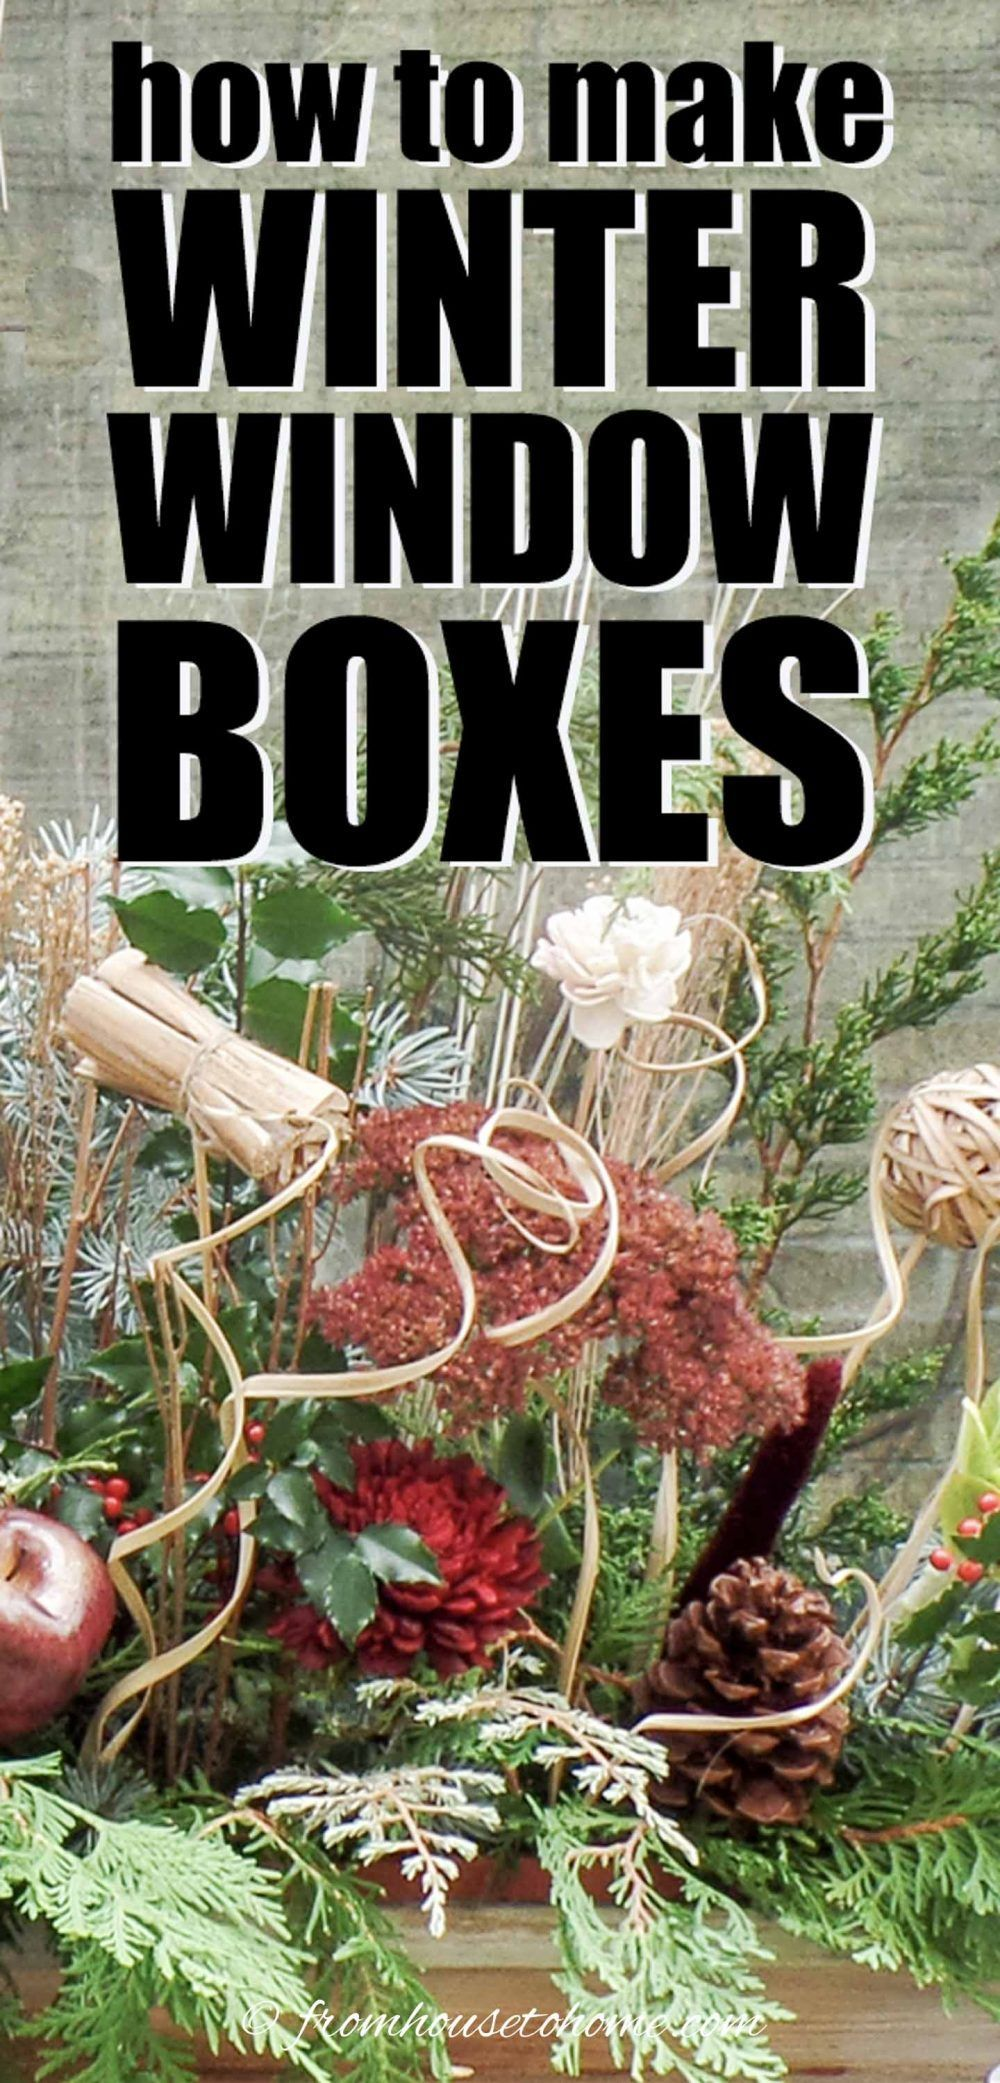 How To Make Winter Window Boxes (The Easy Way Winter